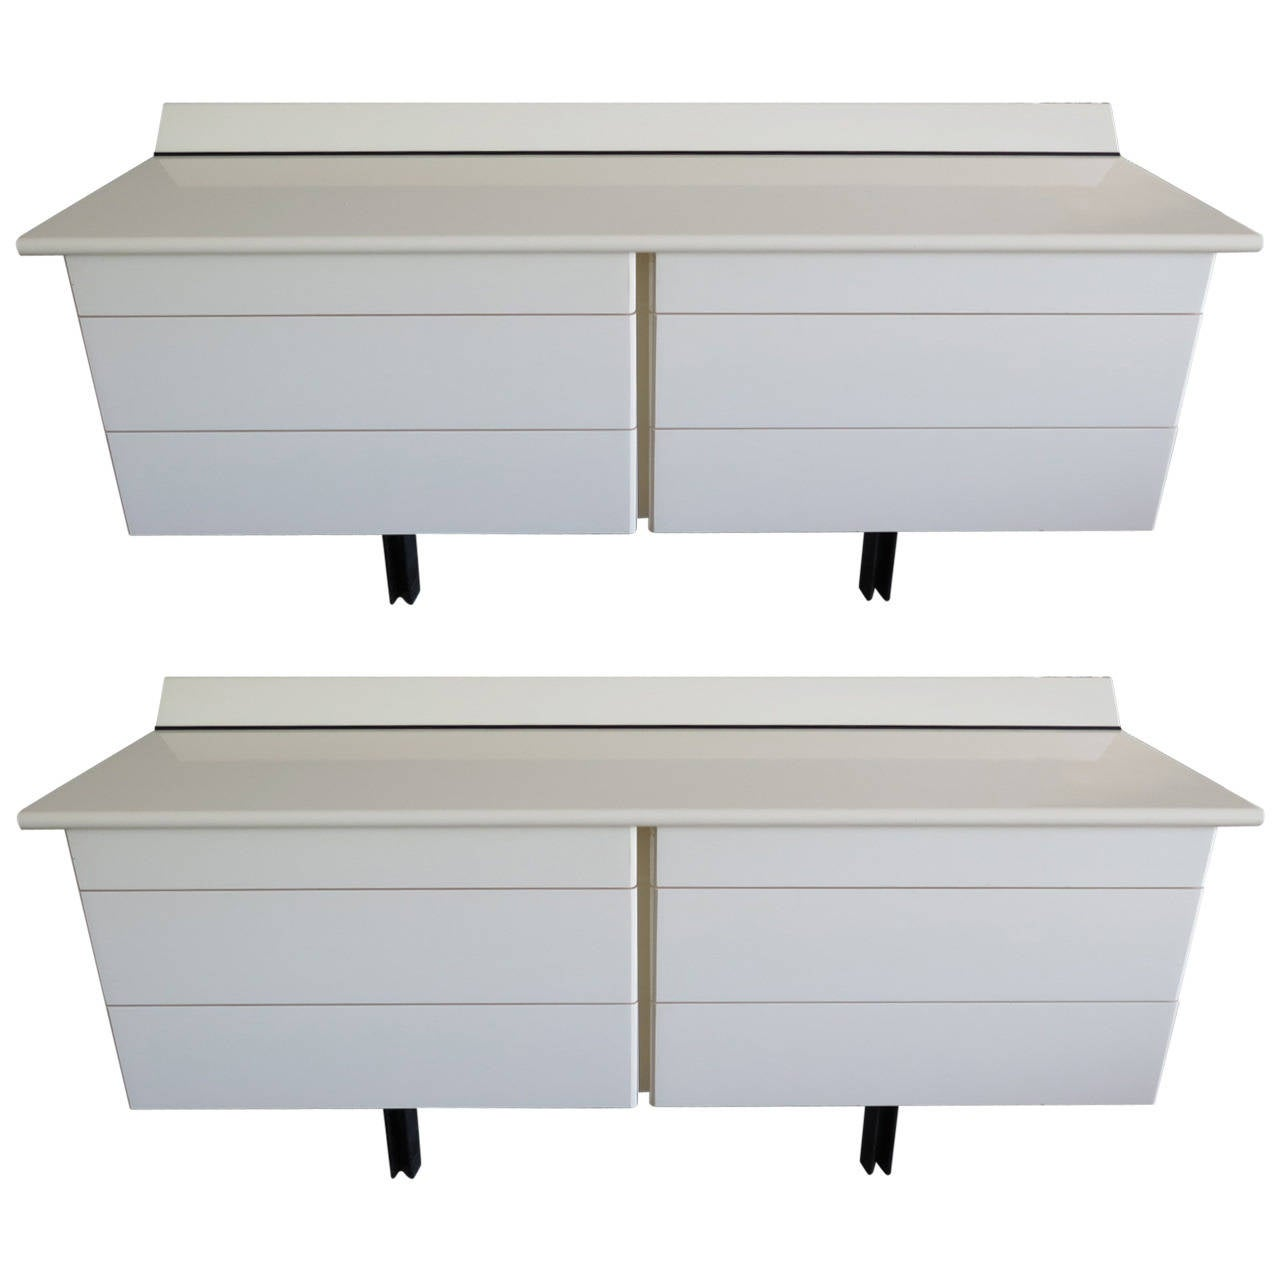 Pair Of Large White Lacquer Chests For Sale At 1stdibs